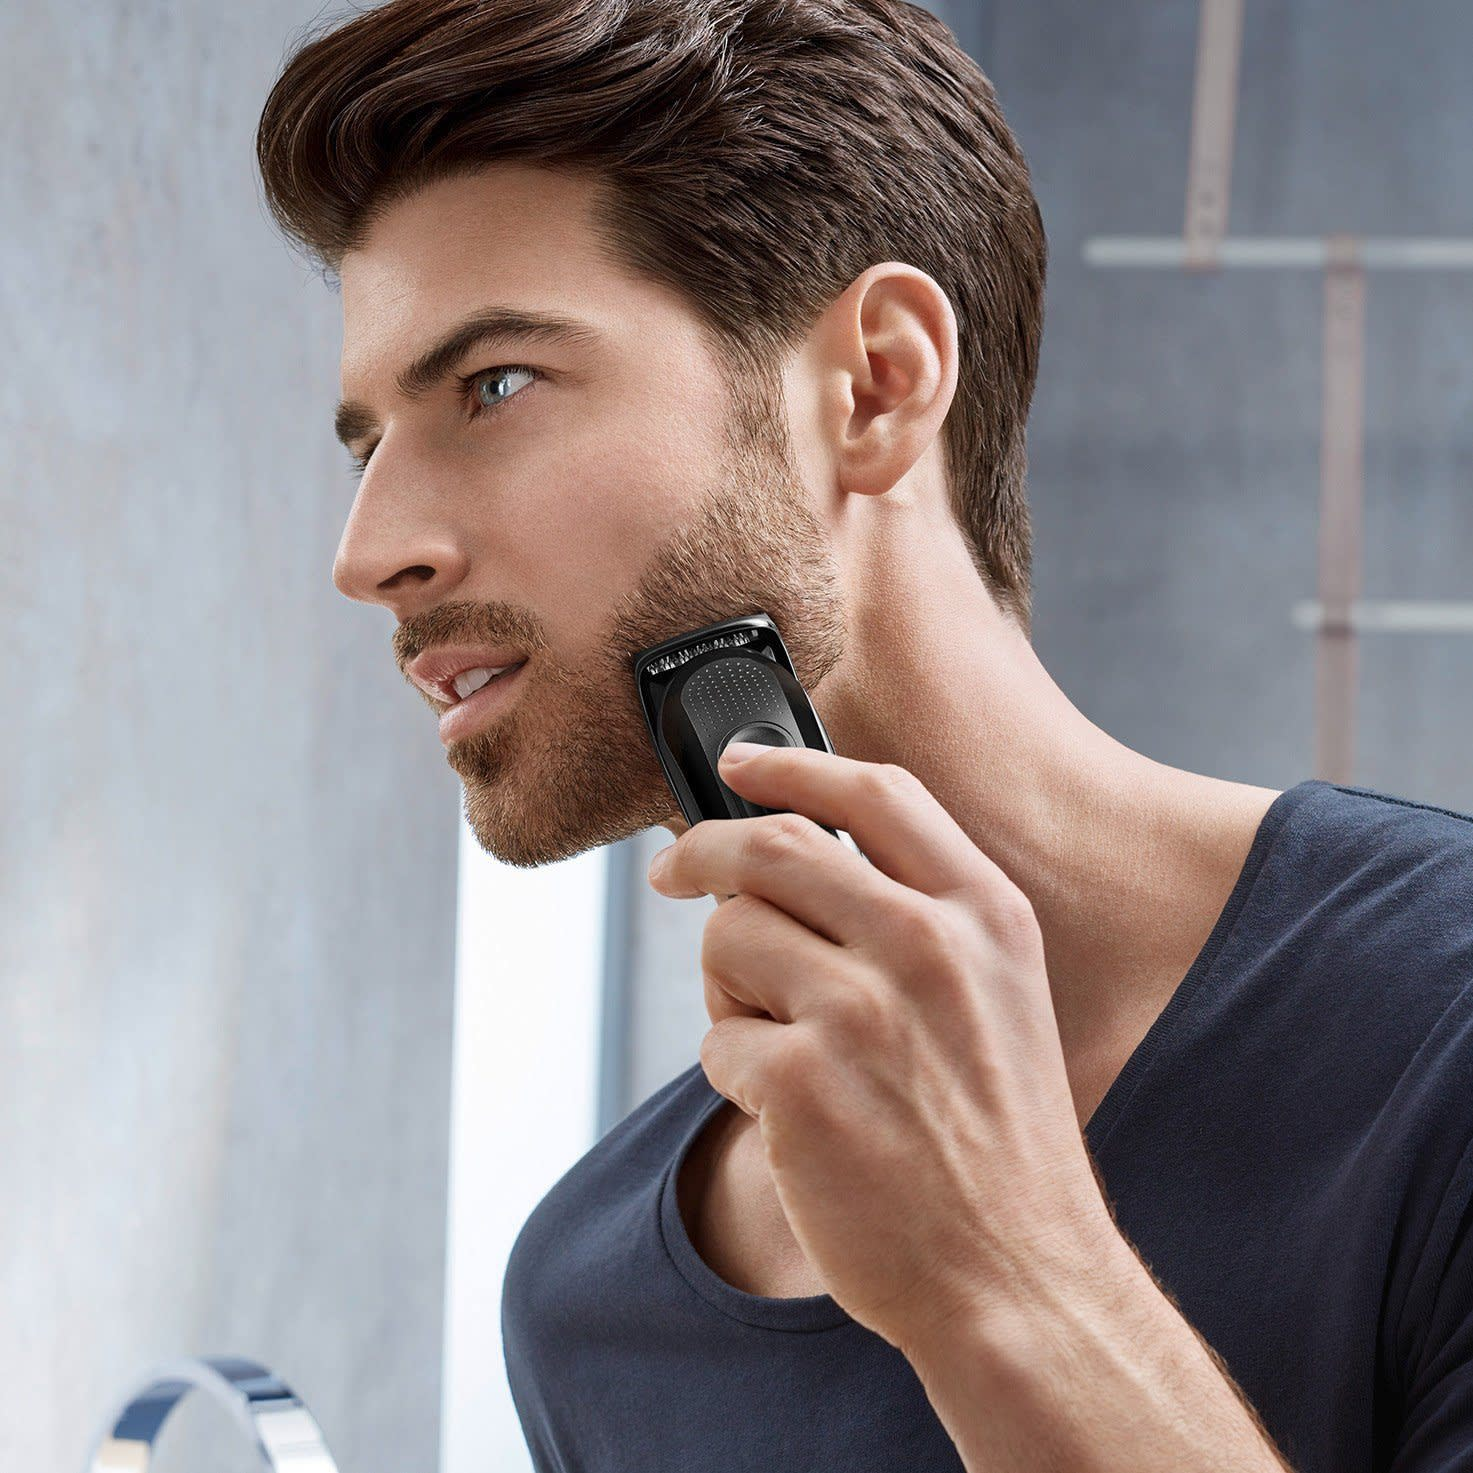 Braun multi grooming kit MGK3042 in use